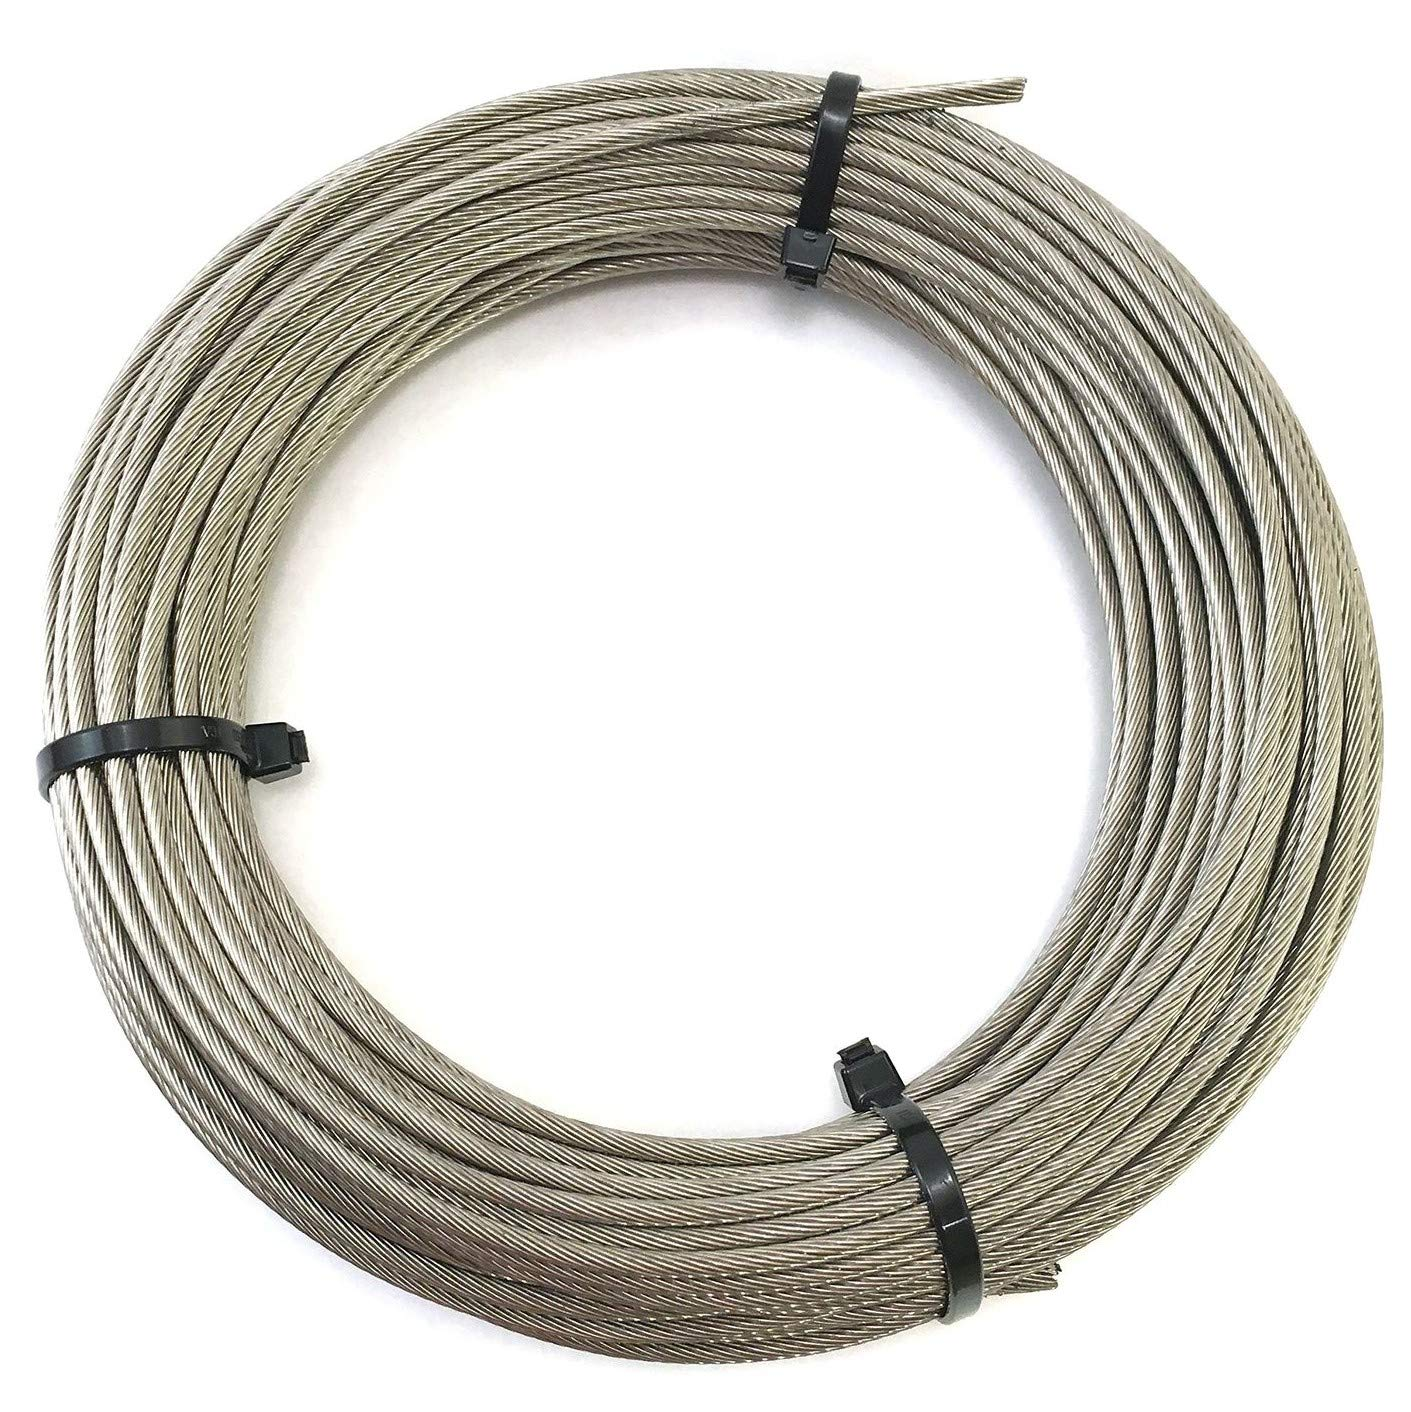 High Brightness Stainless Steel 316 Wire Rope Cable 3/16'' 7x19 by 50' Marine Grade